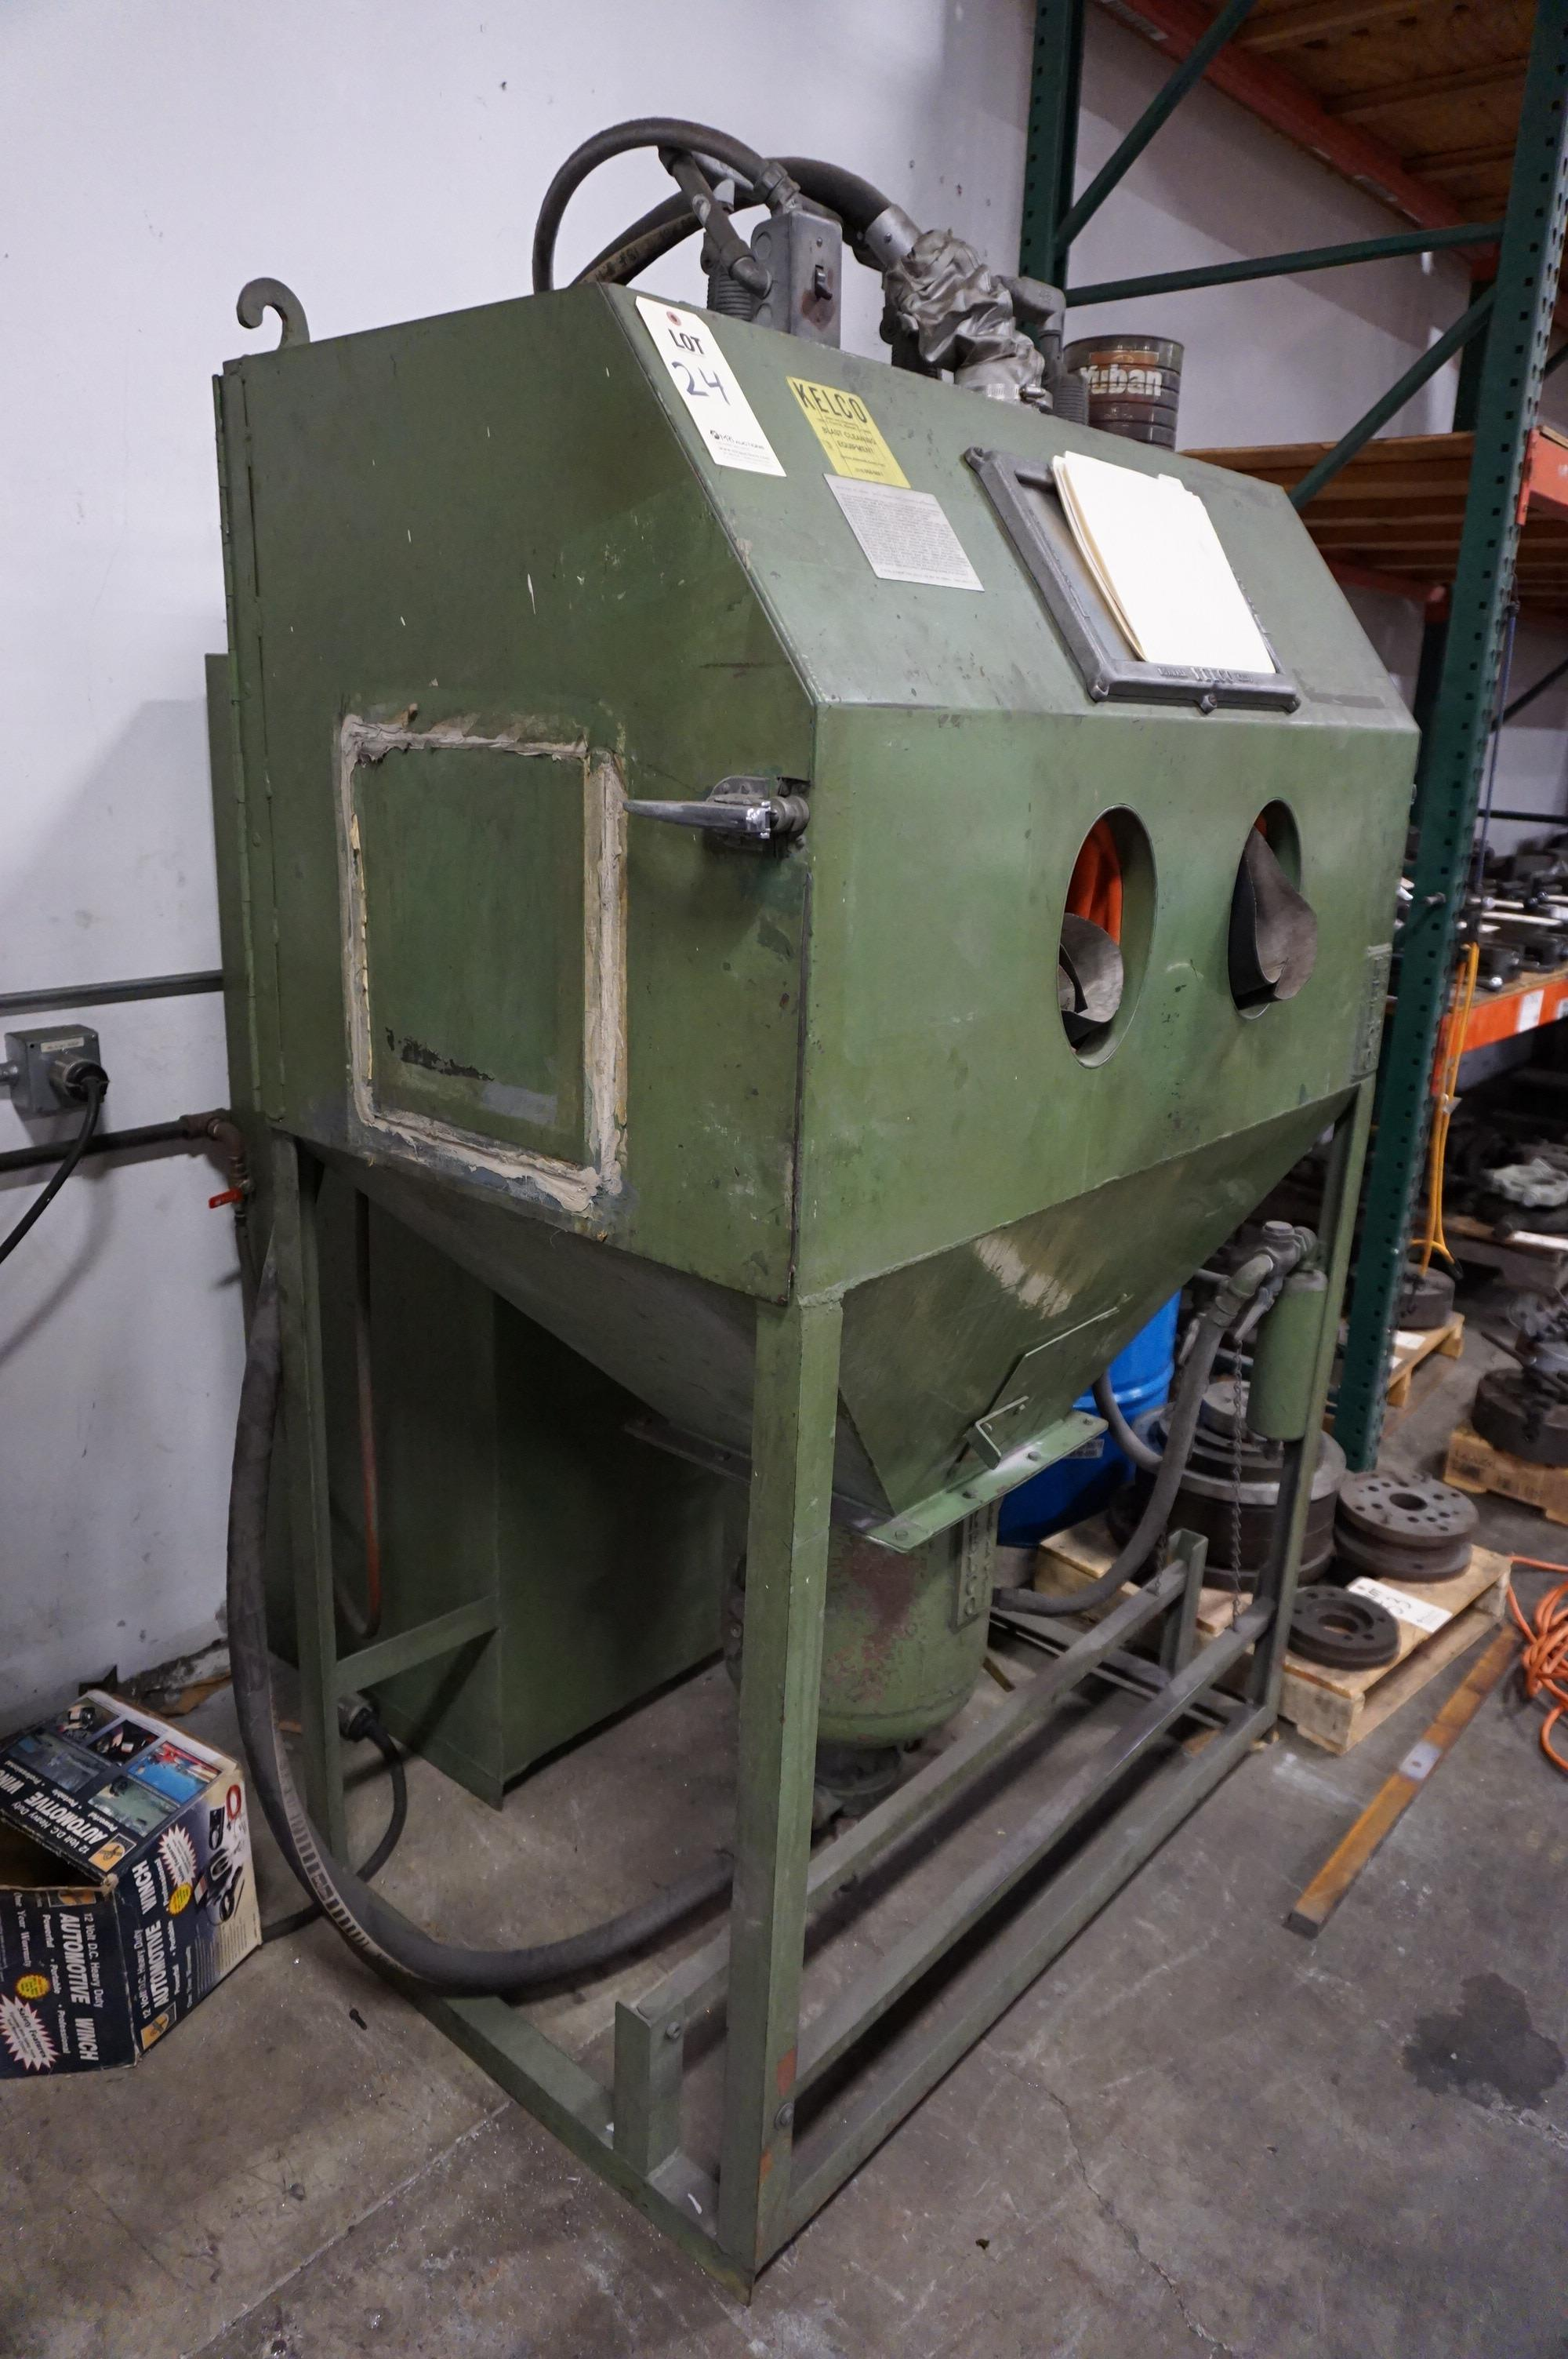 KELCO SAND BLASTING CABINET, MODEL NO CH48C, S/N C3443, WITH CATALOG - Image 2 of 7